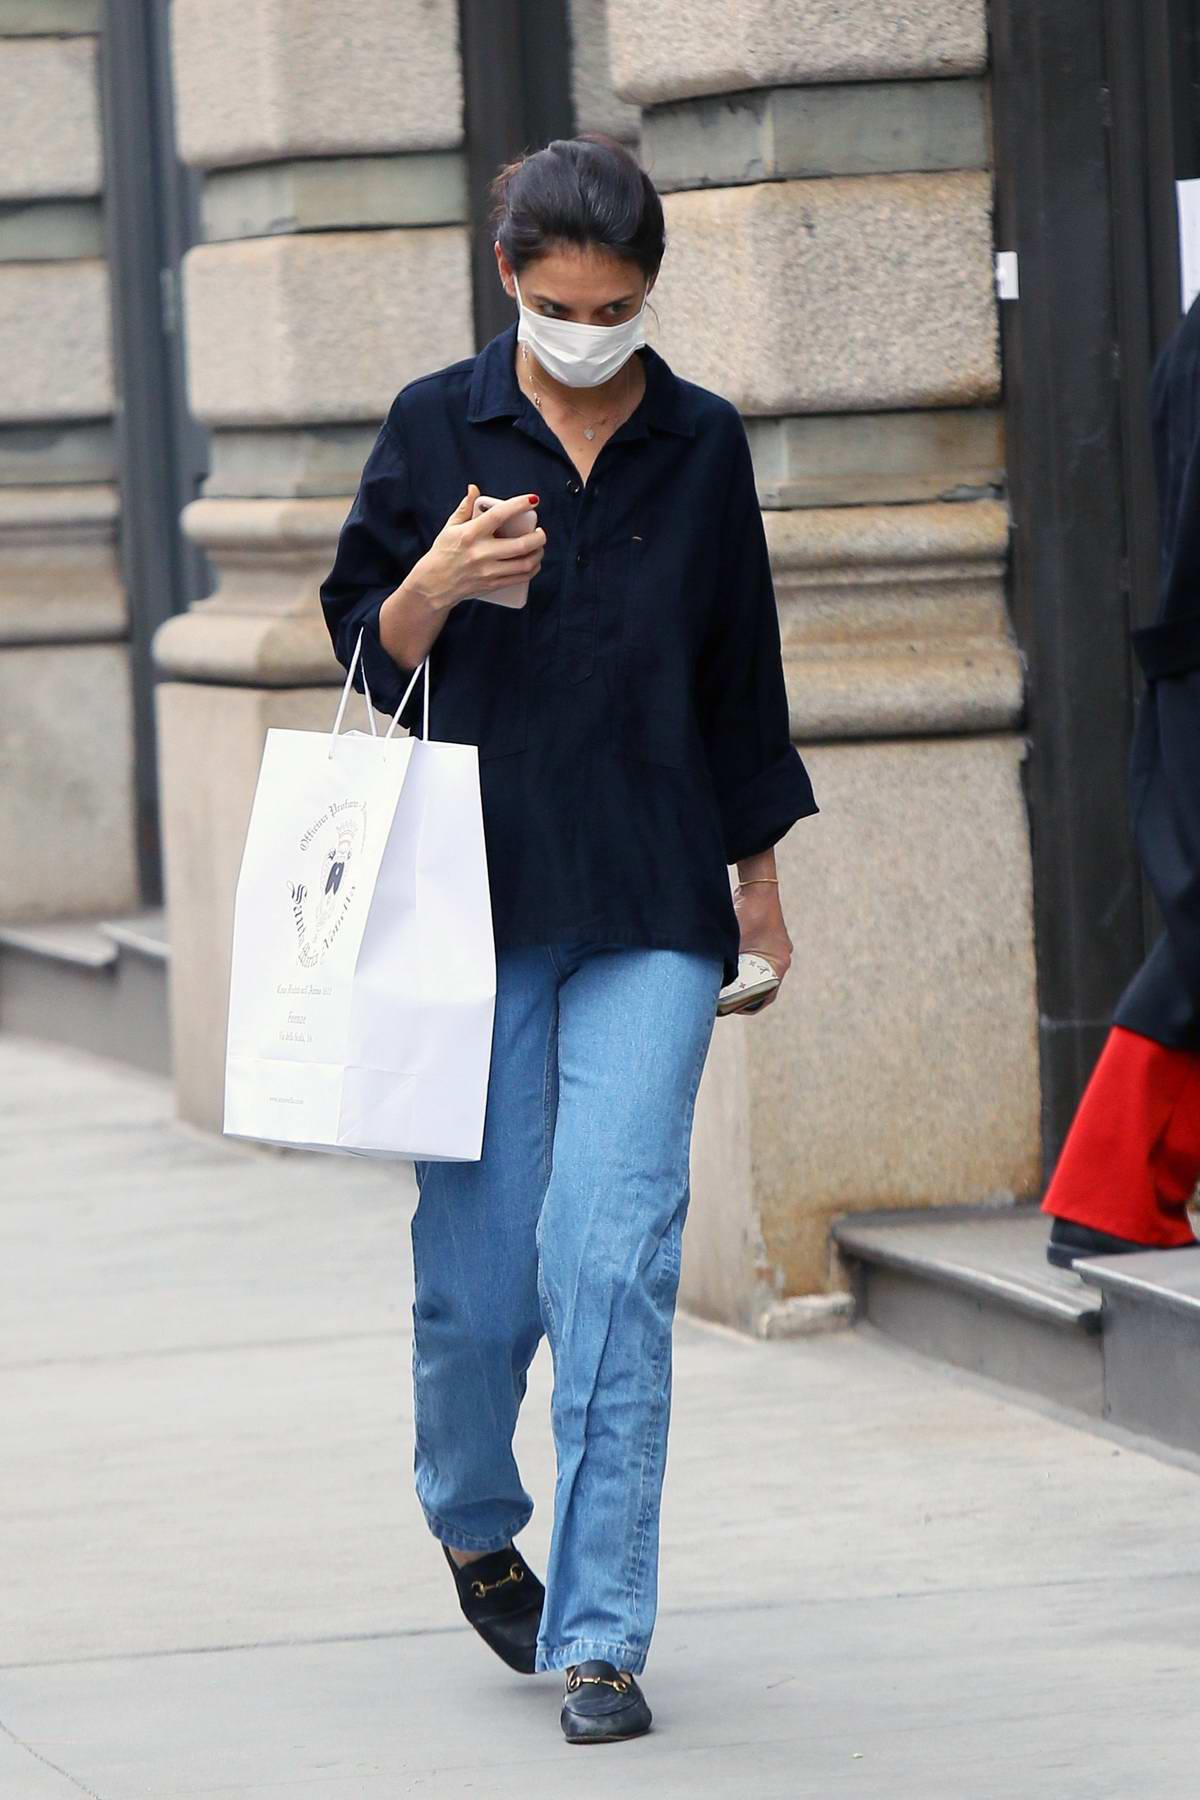 Katie Holmes keeps it casual in jeans and a black shirt as she goes shopping for some perfume in New York City